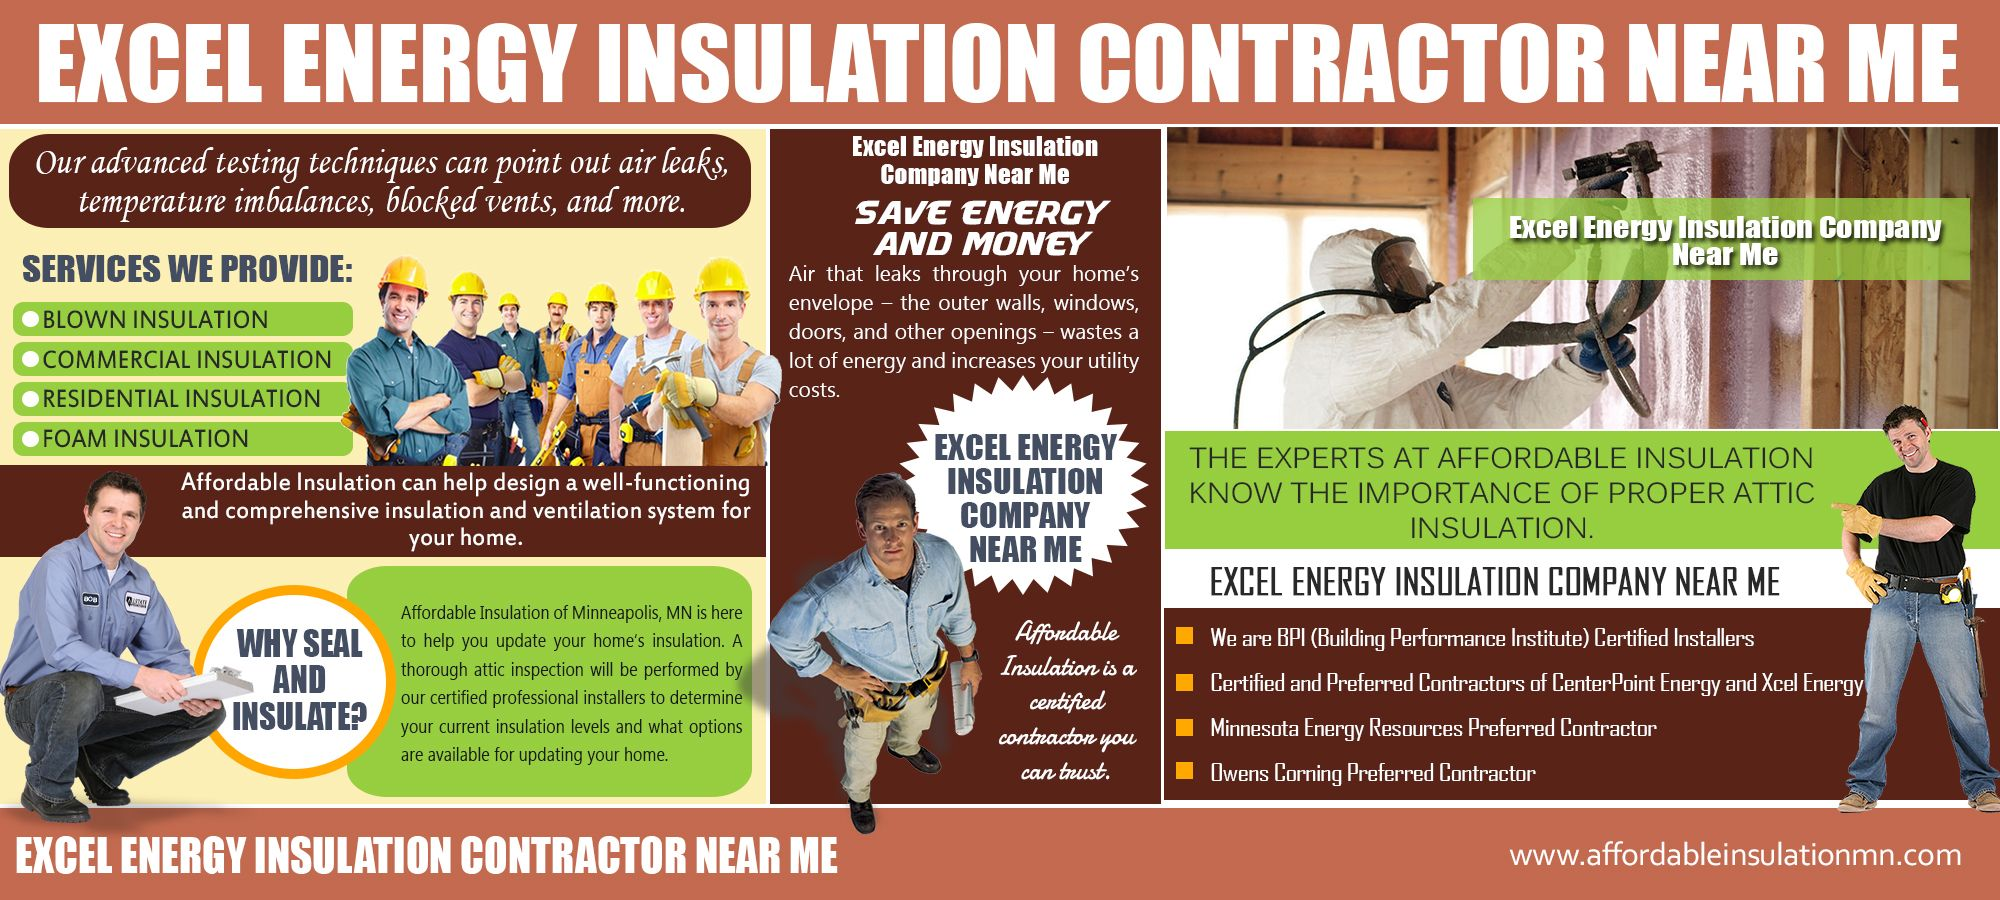 Pin By Insulation Contractor Mn On Excel Energy Insulation Company Save Energy Air Leaks Energy